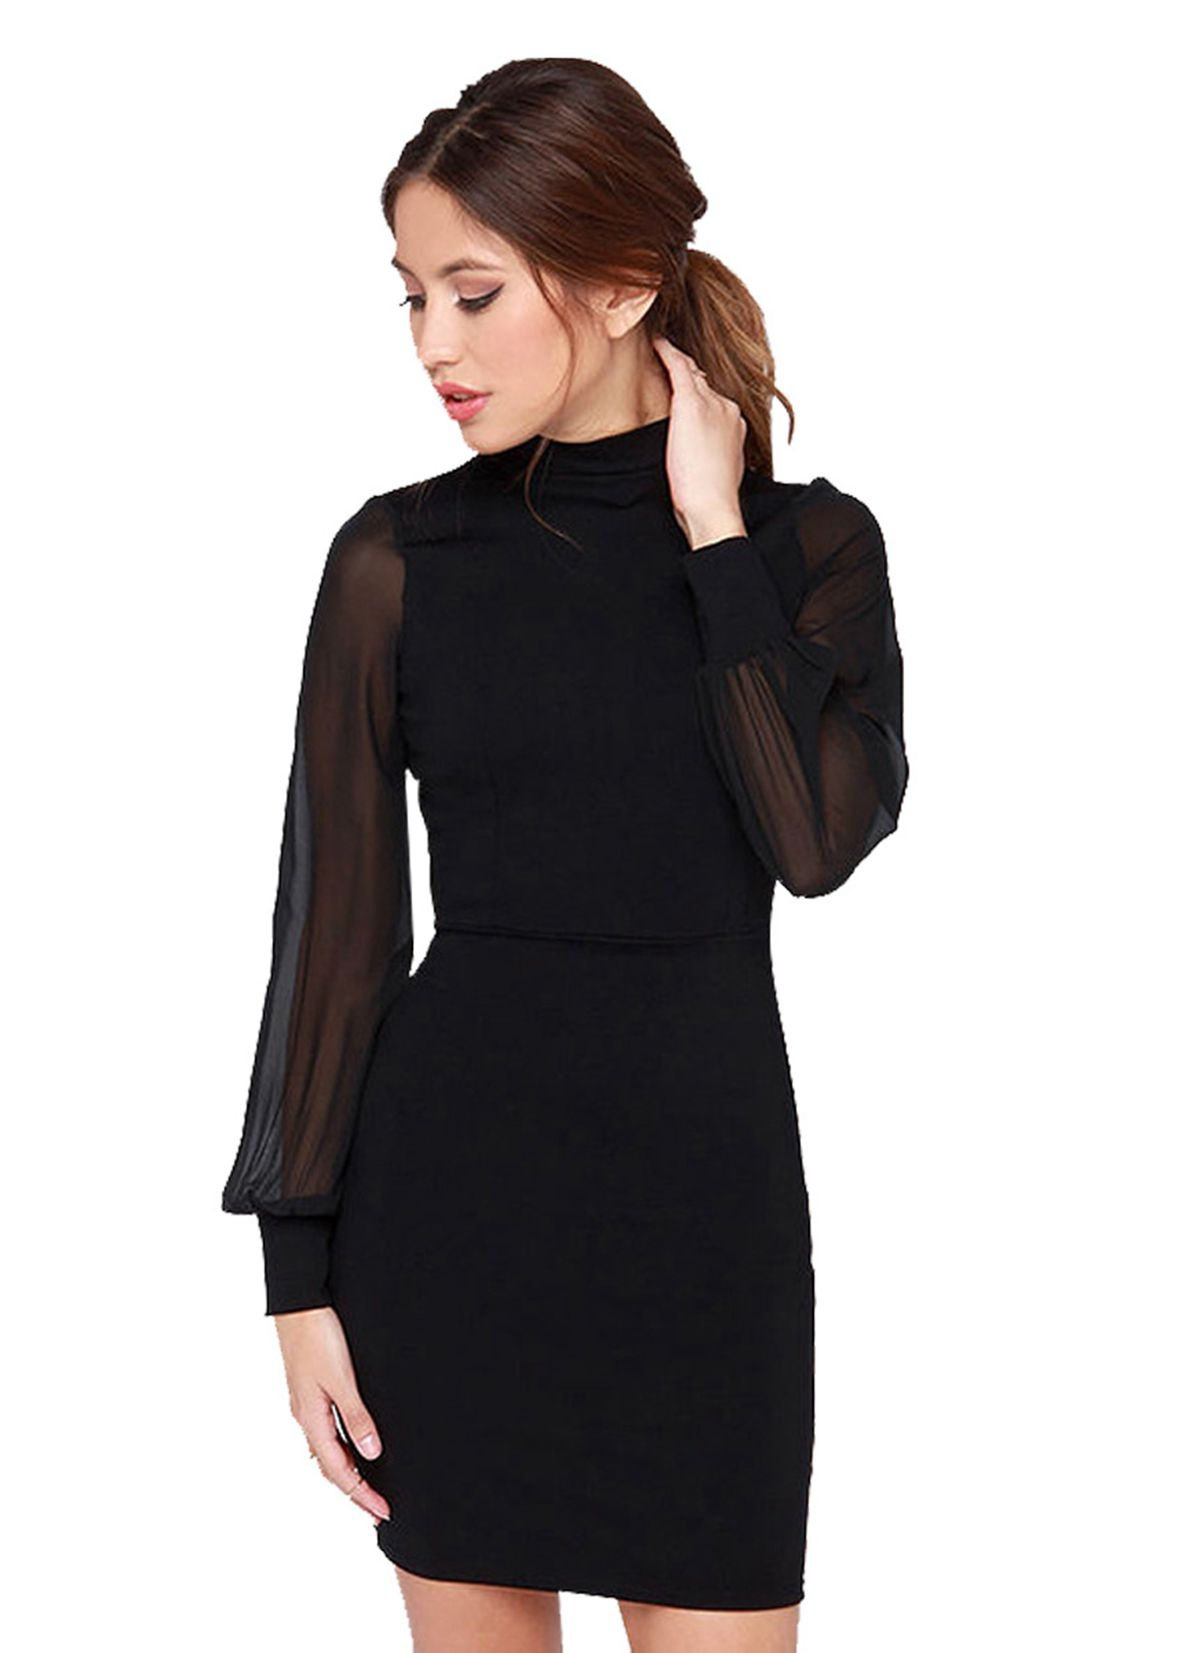 ARON BOSS Women's Backless Long Sleeve Cocktail Party Short Sexy Dress (S, Black-002)